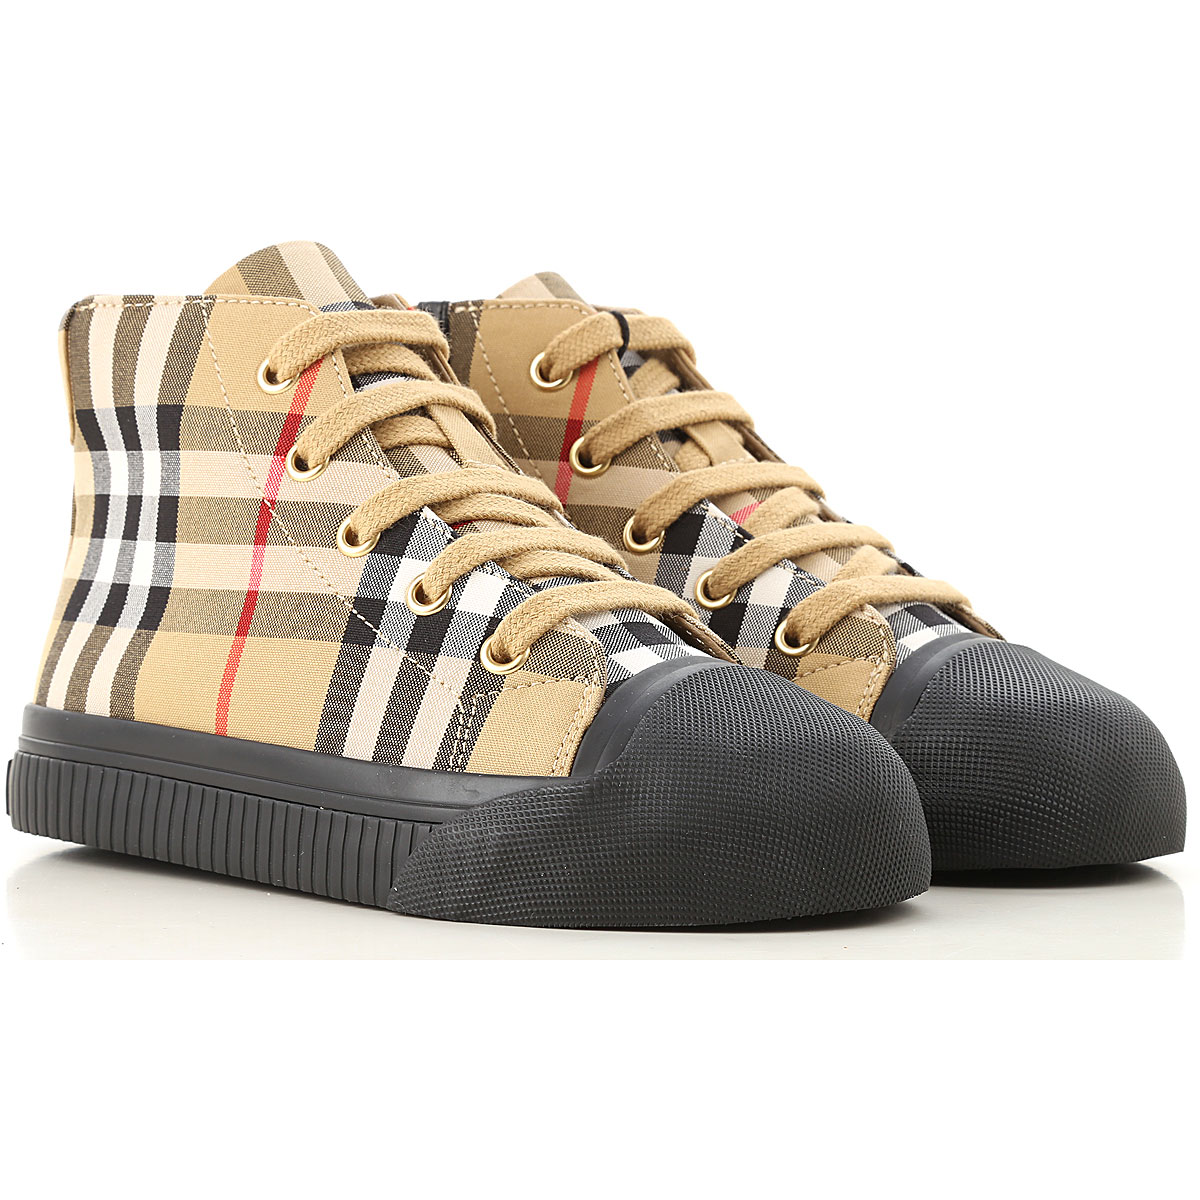 Image of Burberry Kids Shoes for Boys, Antique Yellow, Leather, 2017, 27 28 29 30 32 33 34